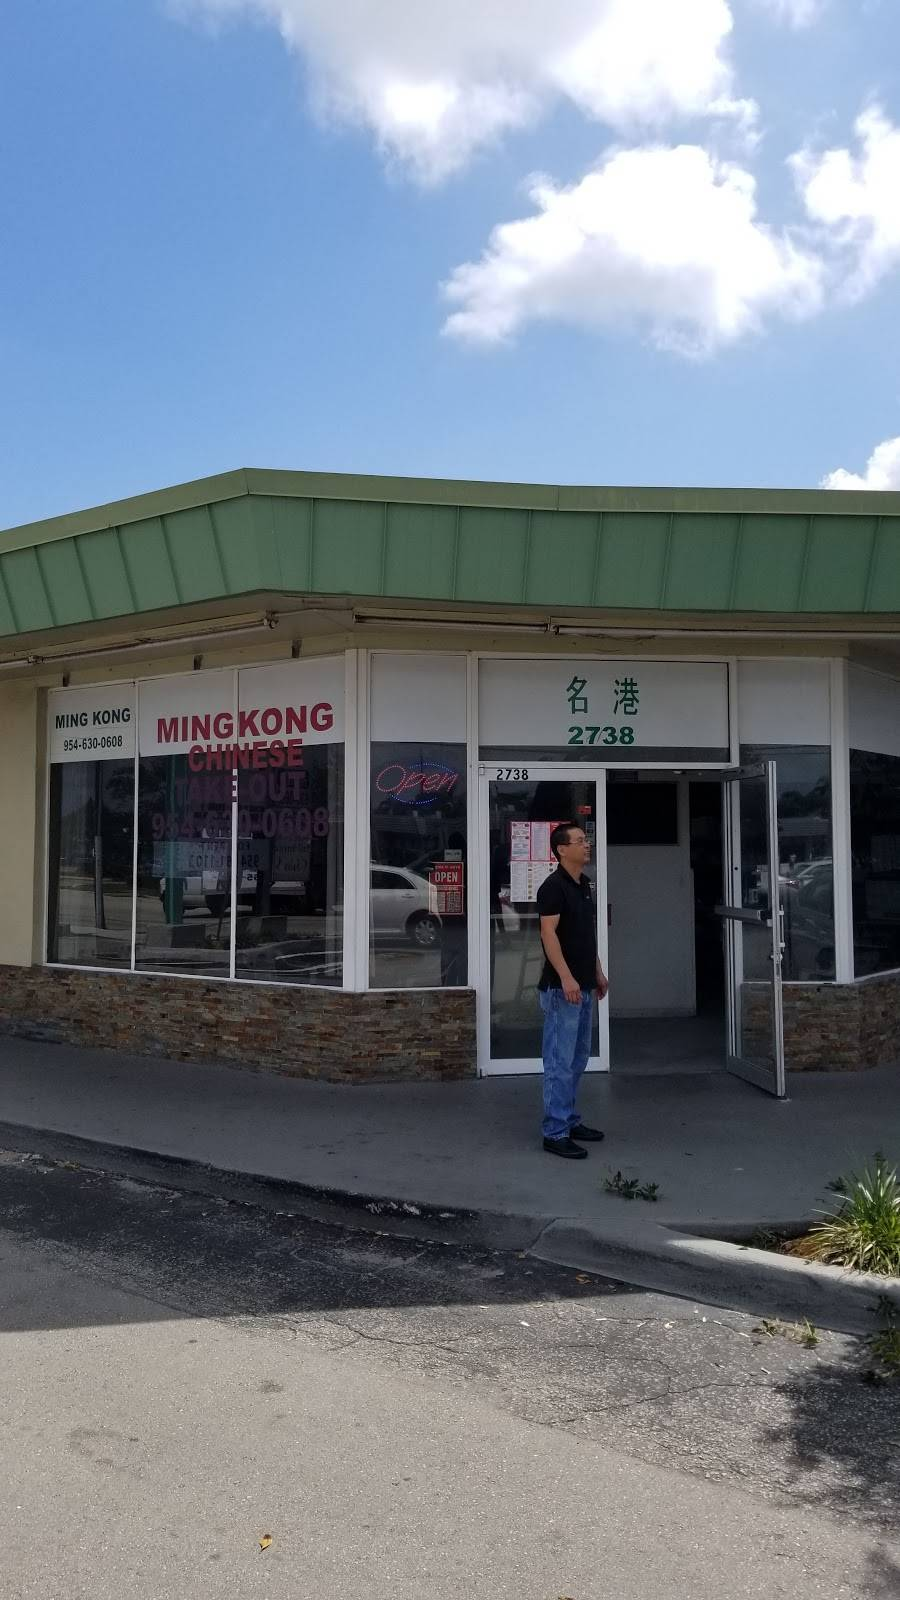 Ming Kong Chinese Restaurant | meal delivery | 2738 N Andrews Ave, Wilton Manors, FL 33311, USA | 9546300608 OR +1 954-630-0608